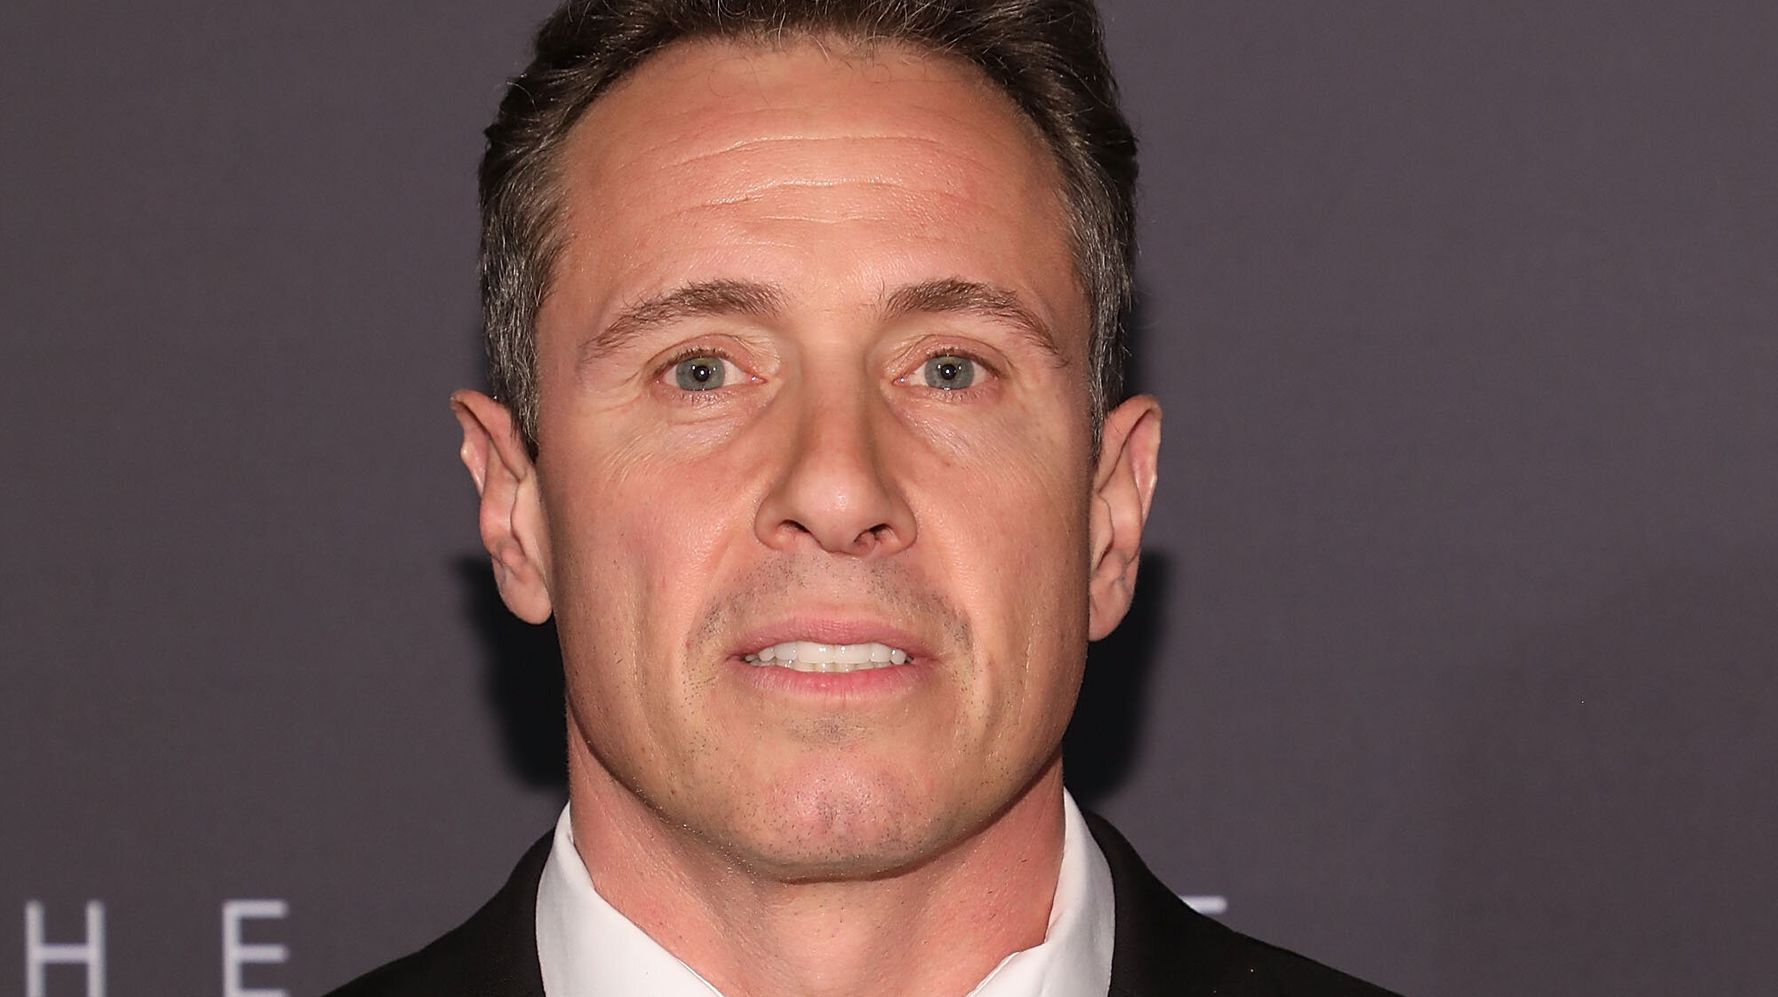 Westlake Legal Group 5d526b522200003100f4f6a6 Chris Cuomo Squares Up To Man Calling Him 'Fredo': 'Like The N-Word For Us'